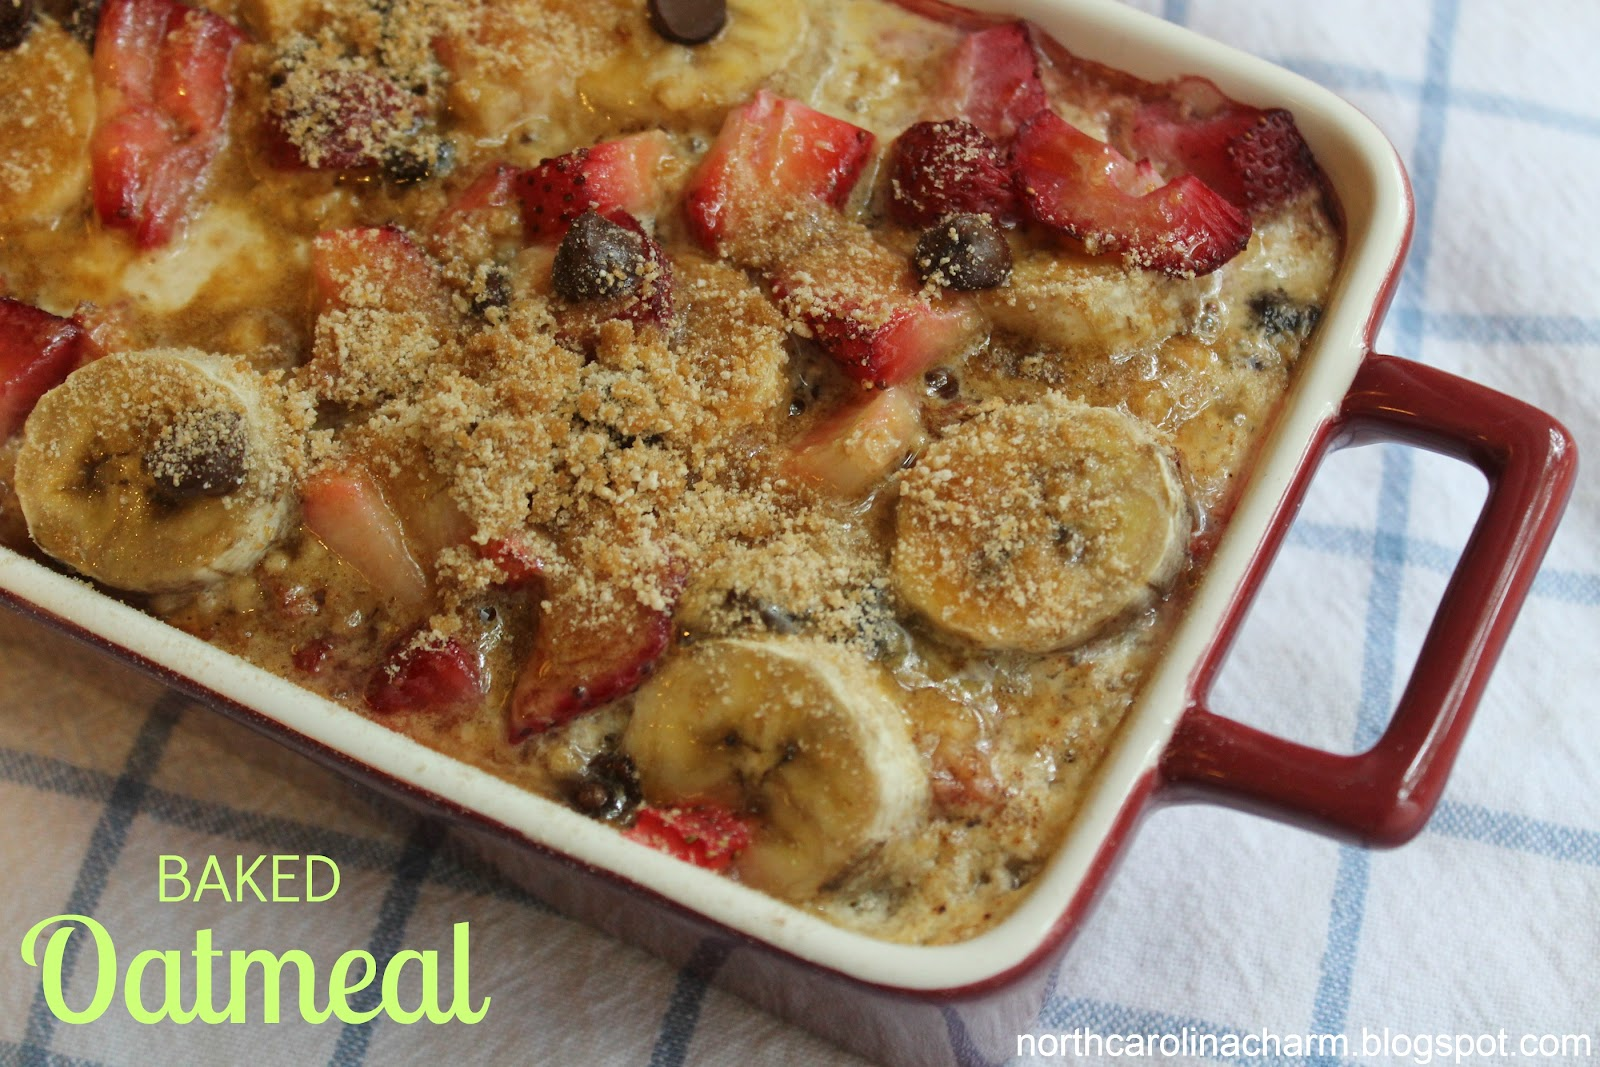 Baked Oatmeal Delight